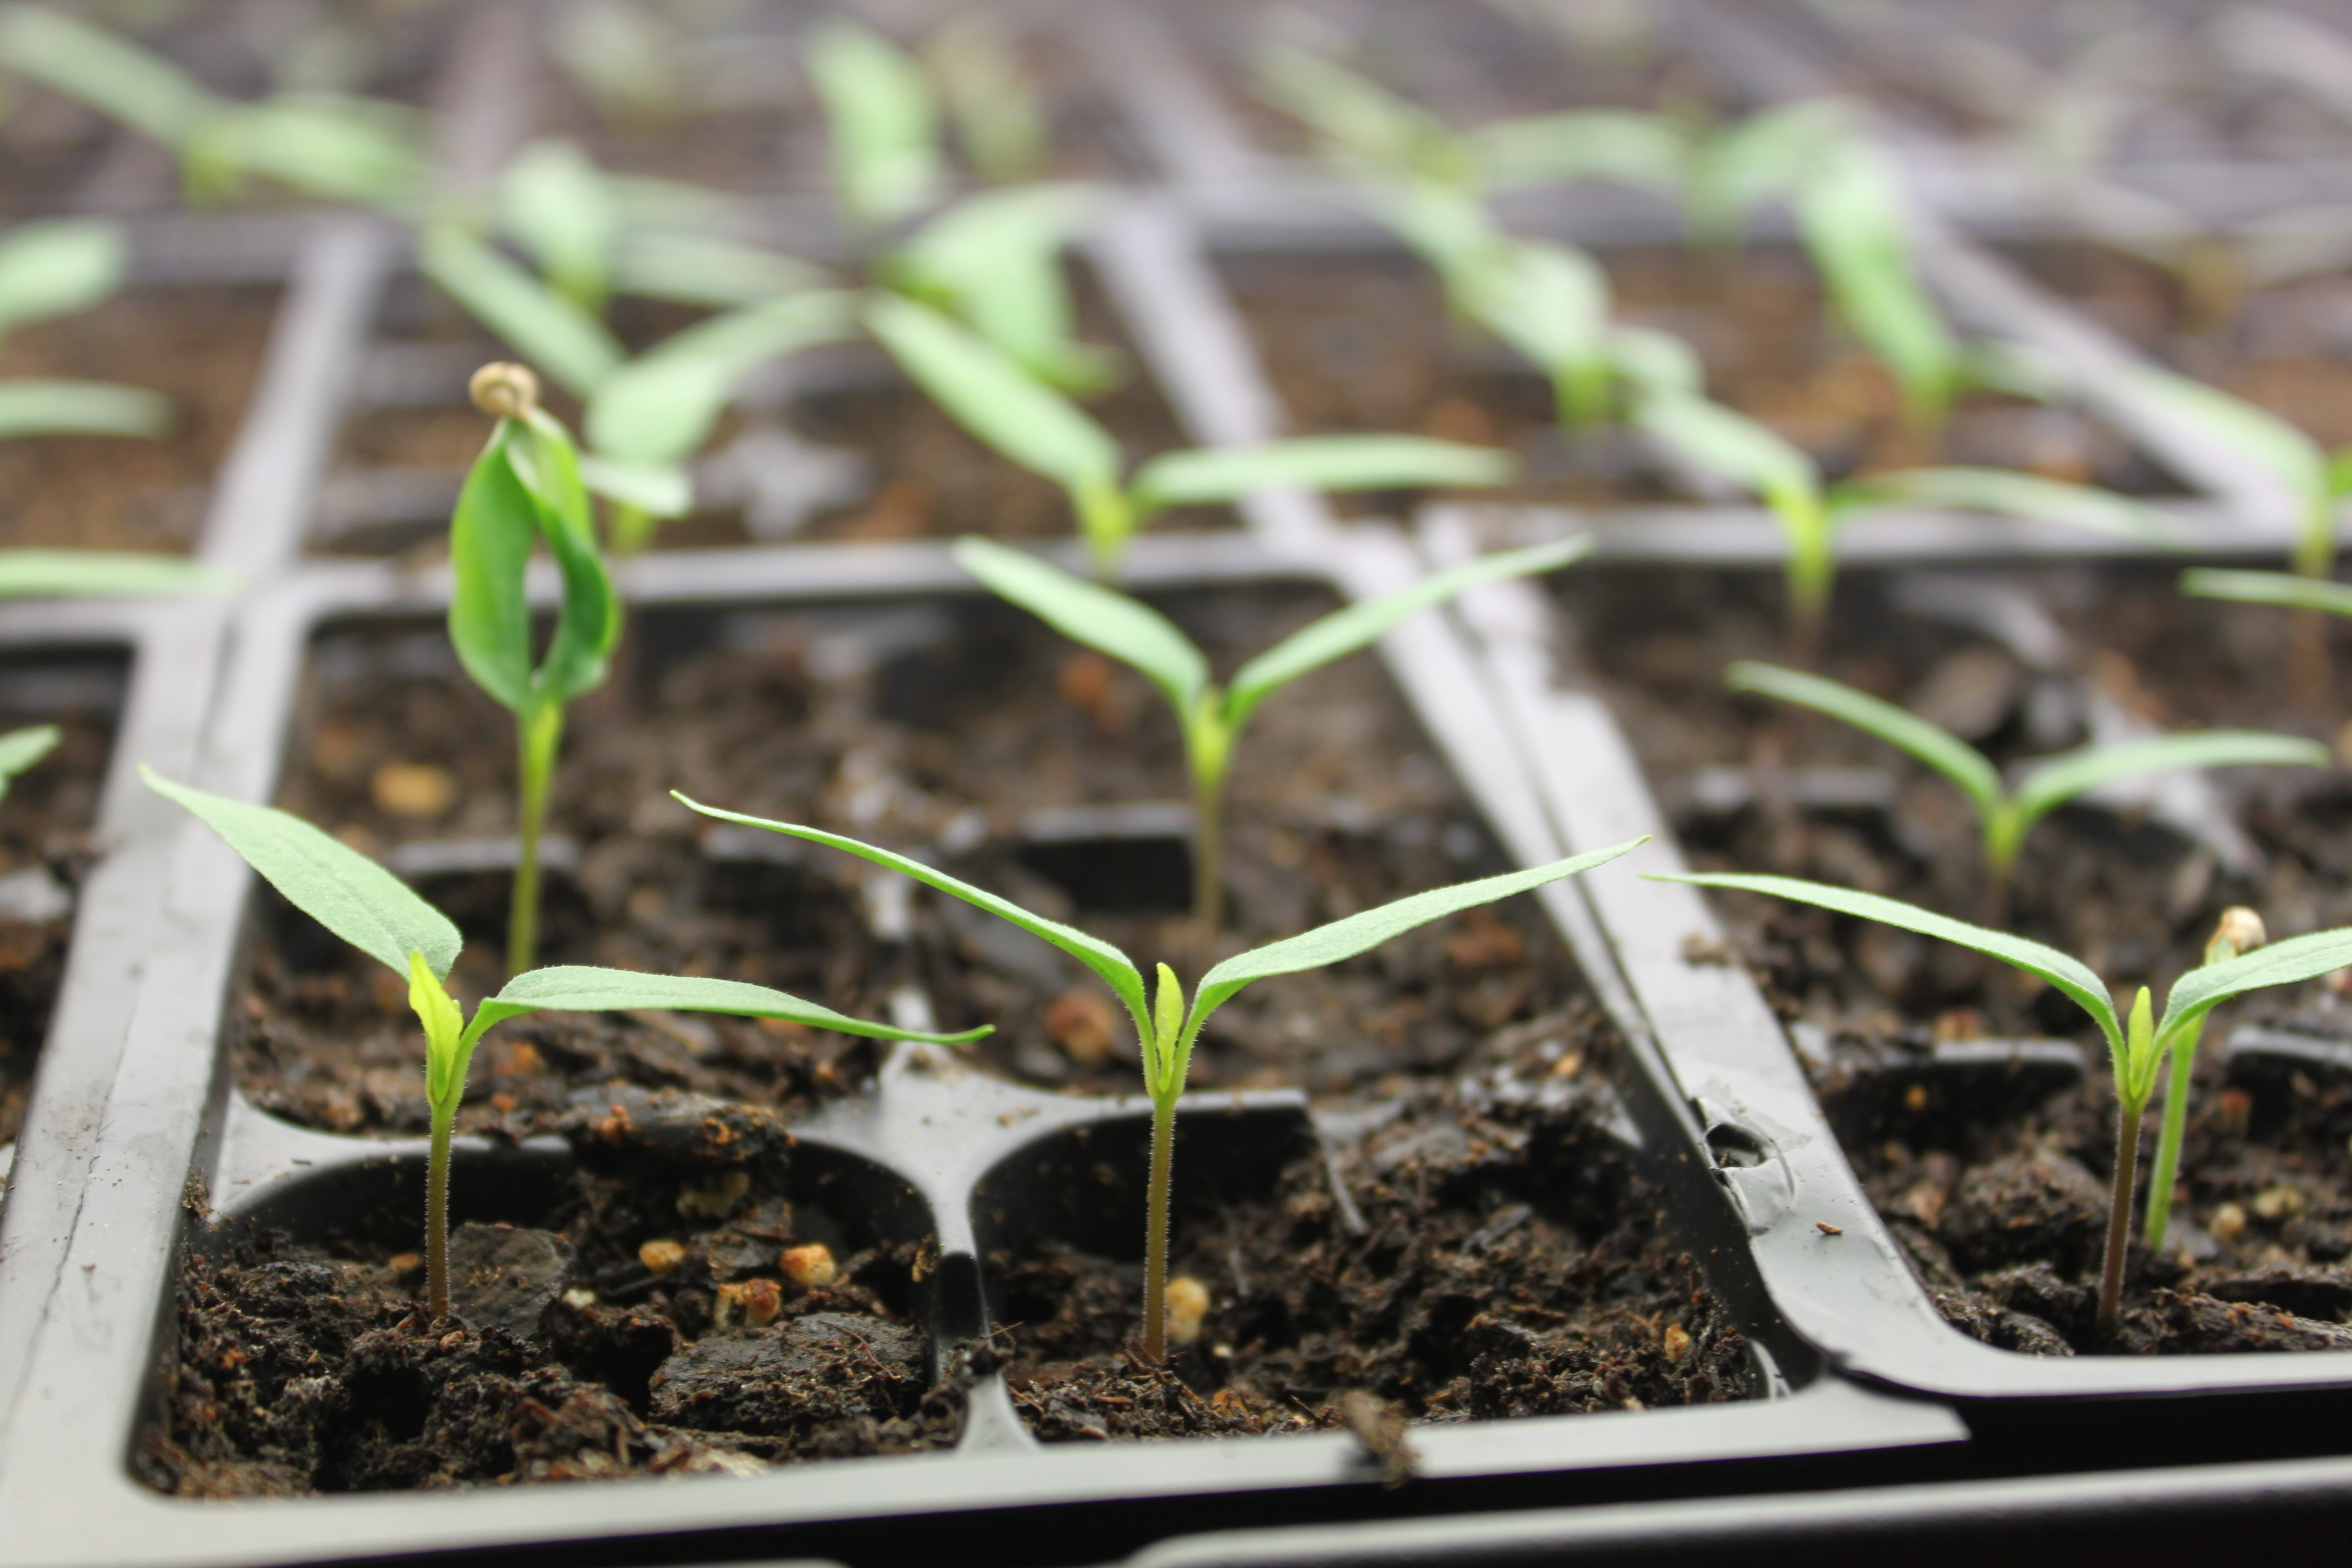 How To Save Seeds From The Vegetable Garden